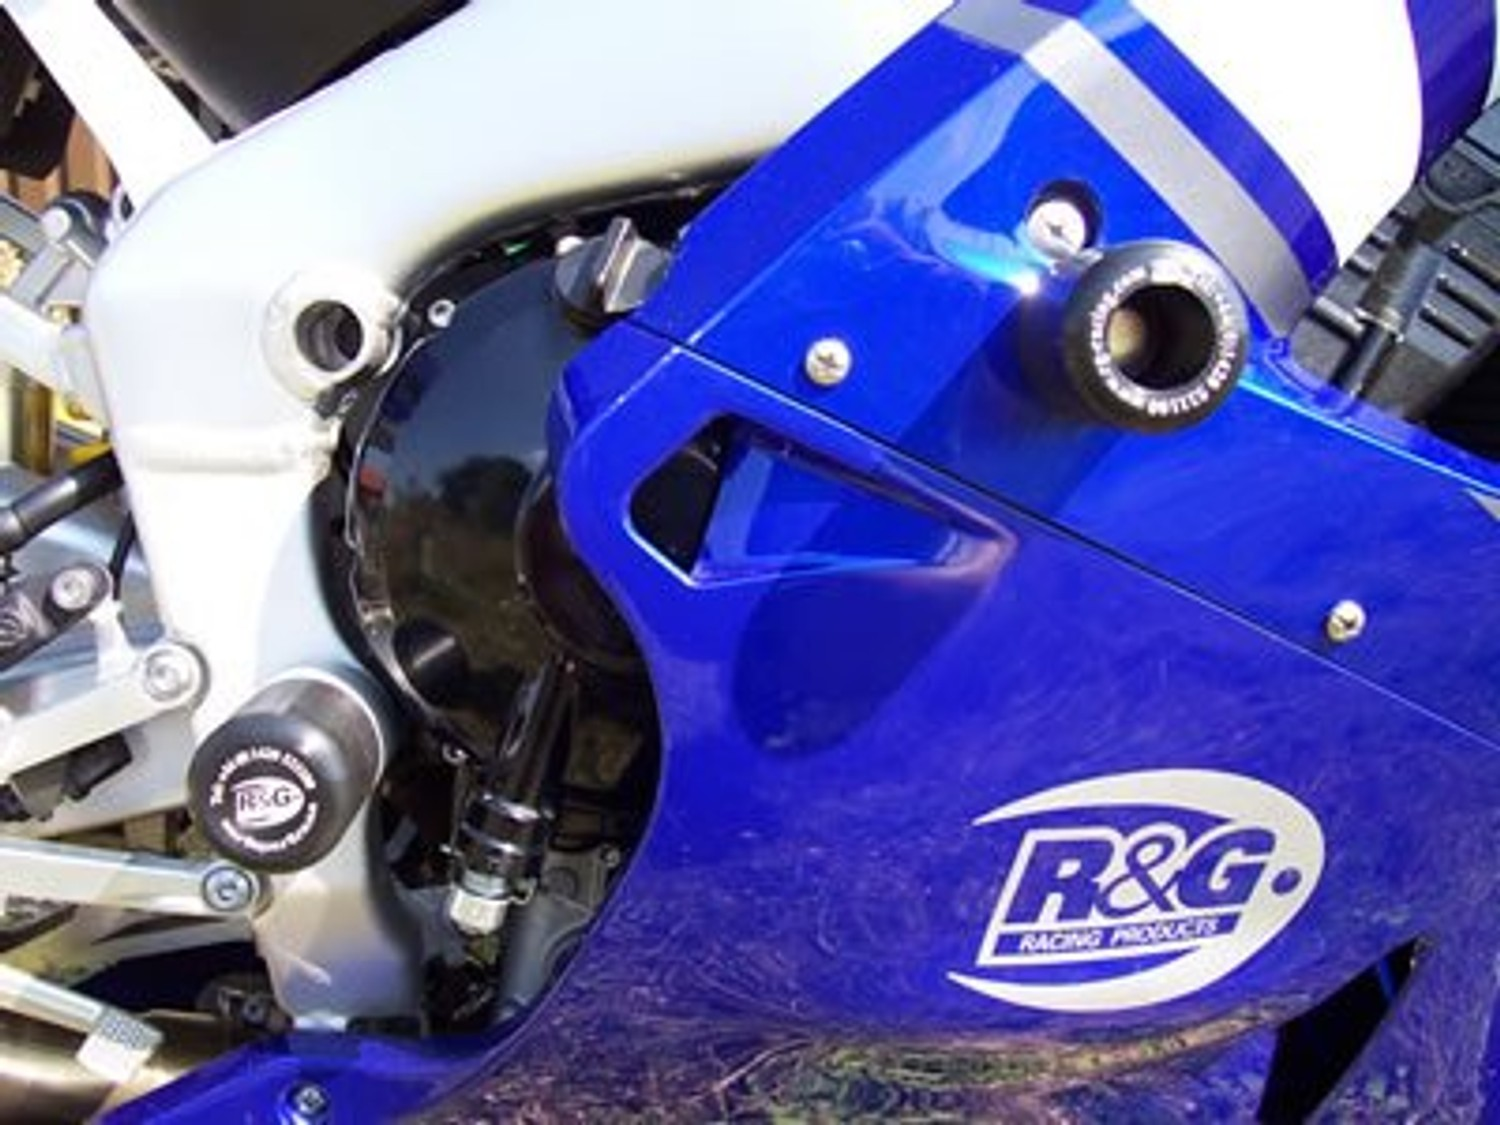 R/&G Crash Protectors In Black For Yamaha 2012 YZF-R6